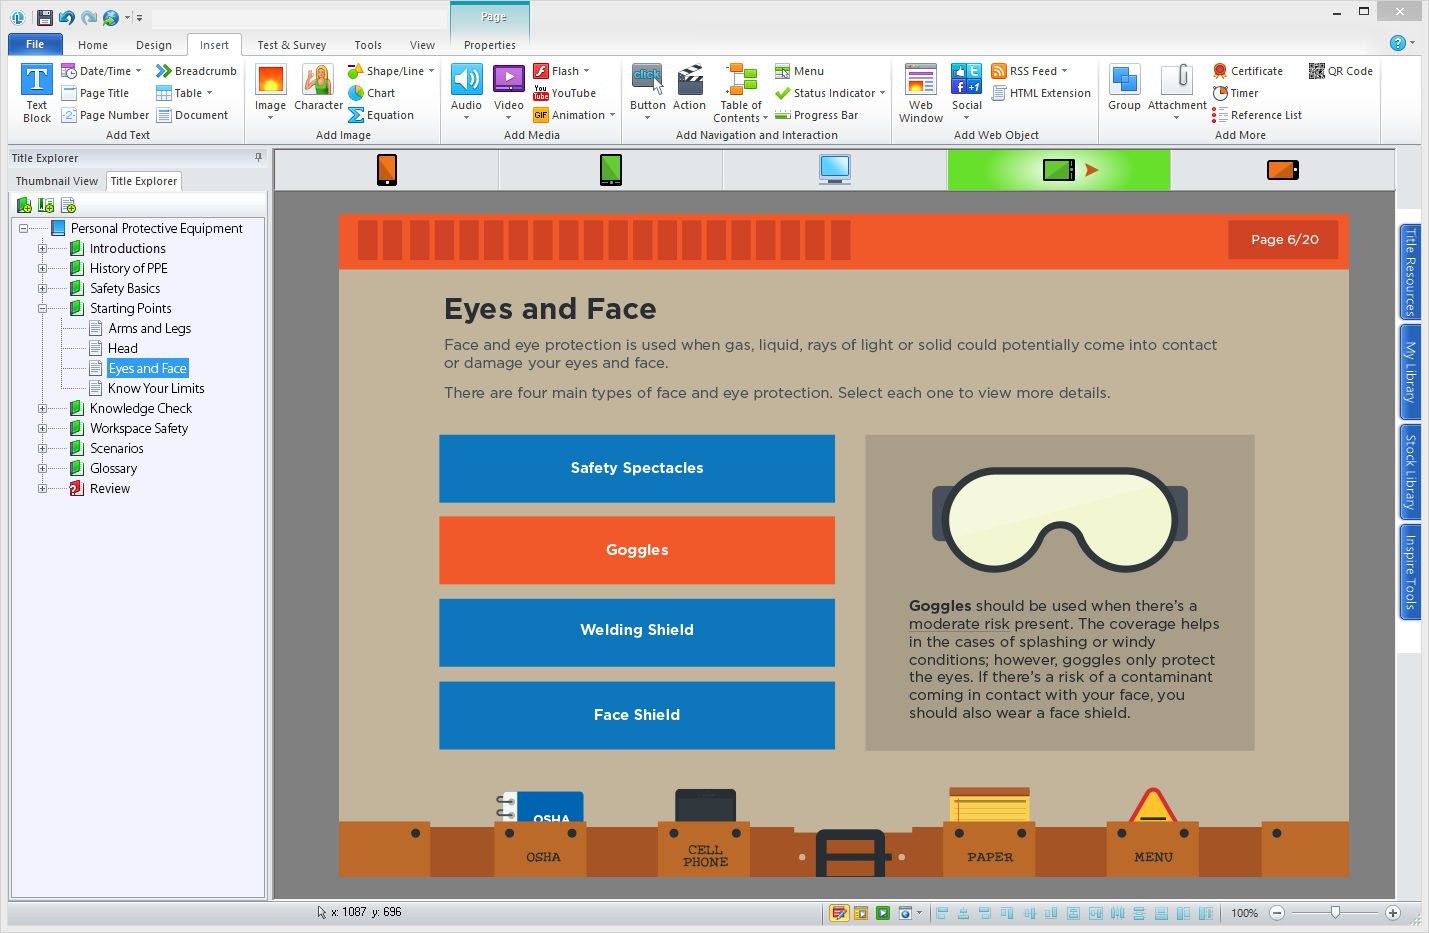 Lectora Publisher - 15 Instructional Design Software To Create Incredible eLearning Content